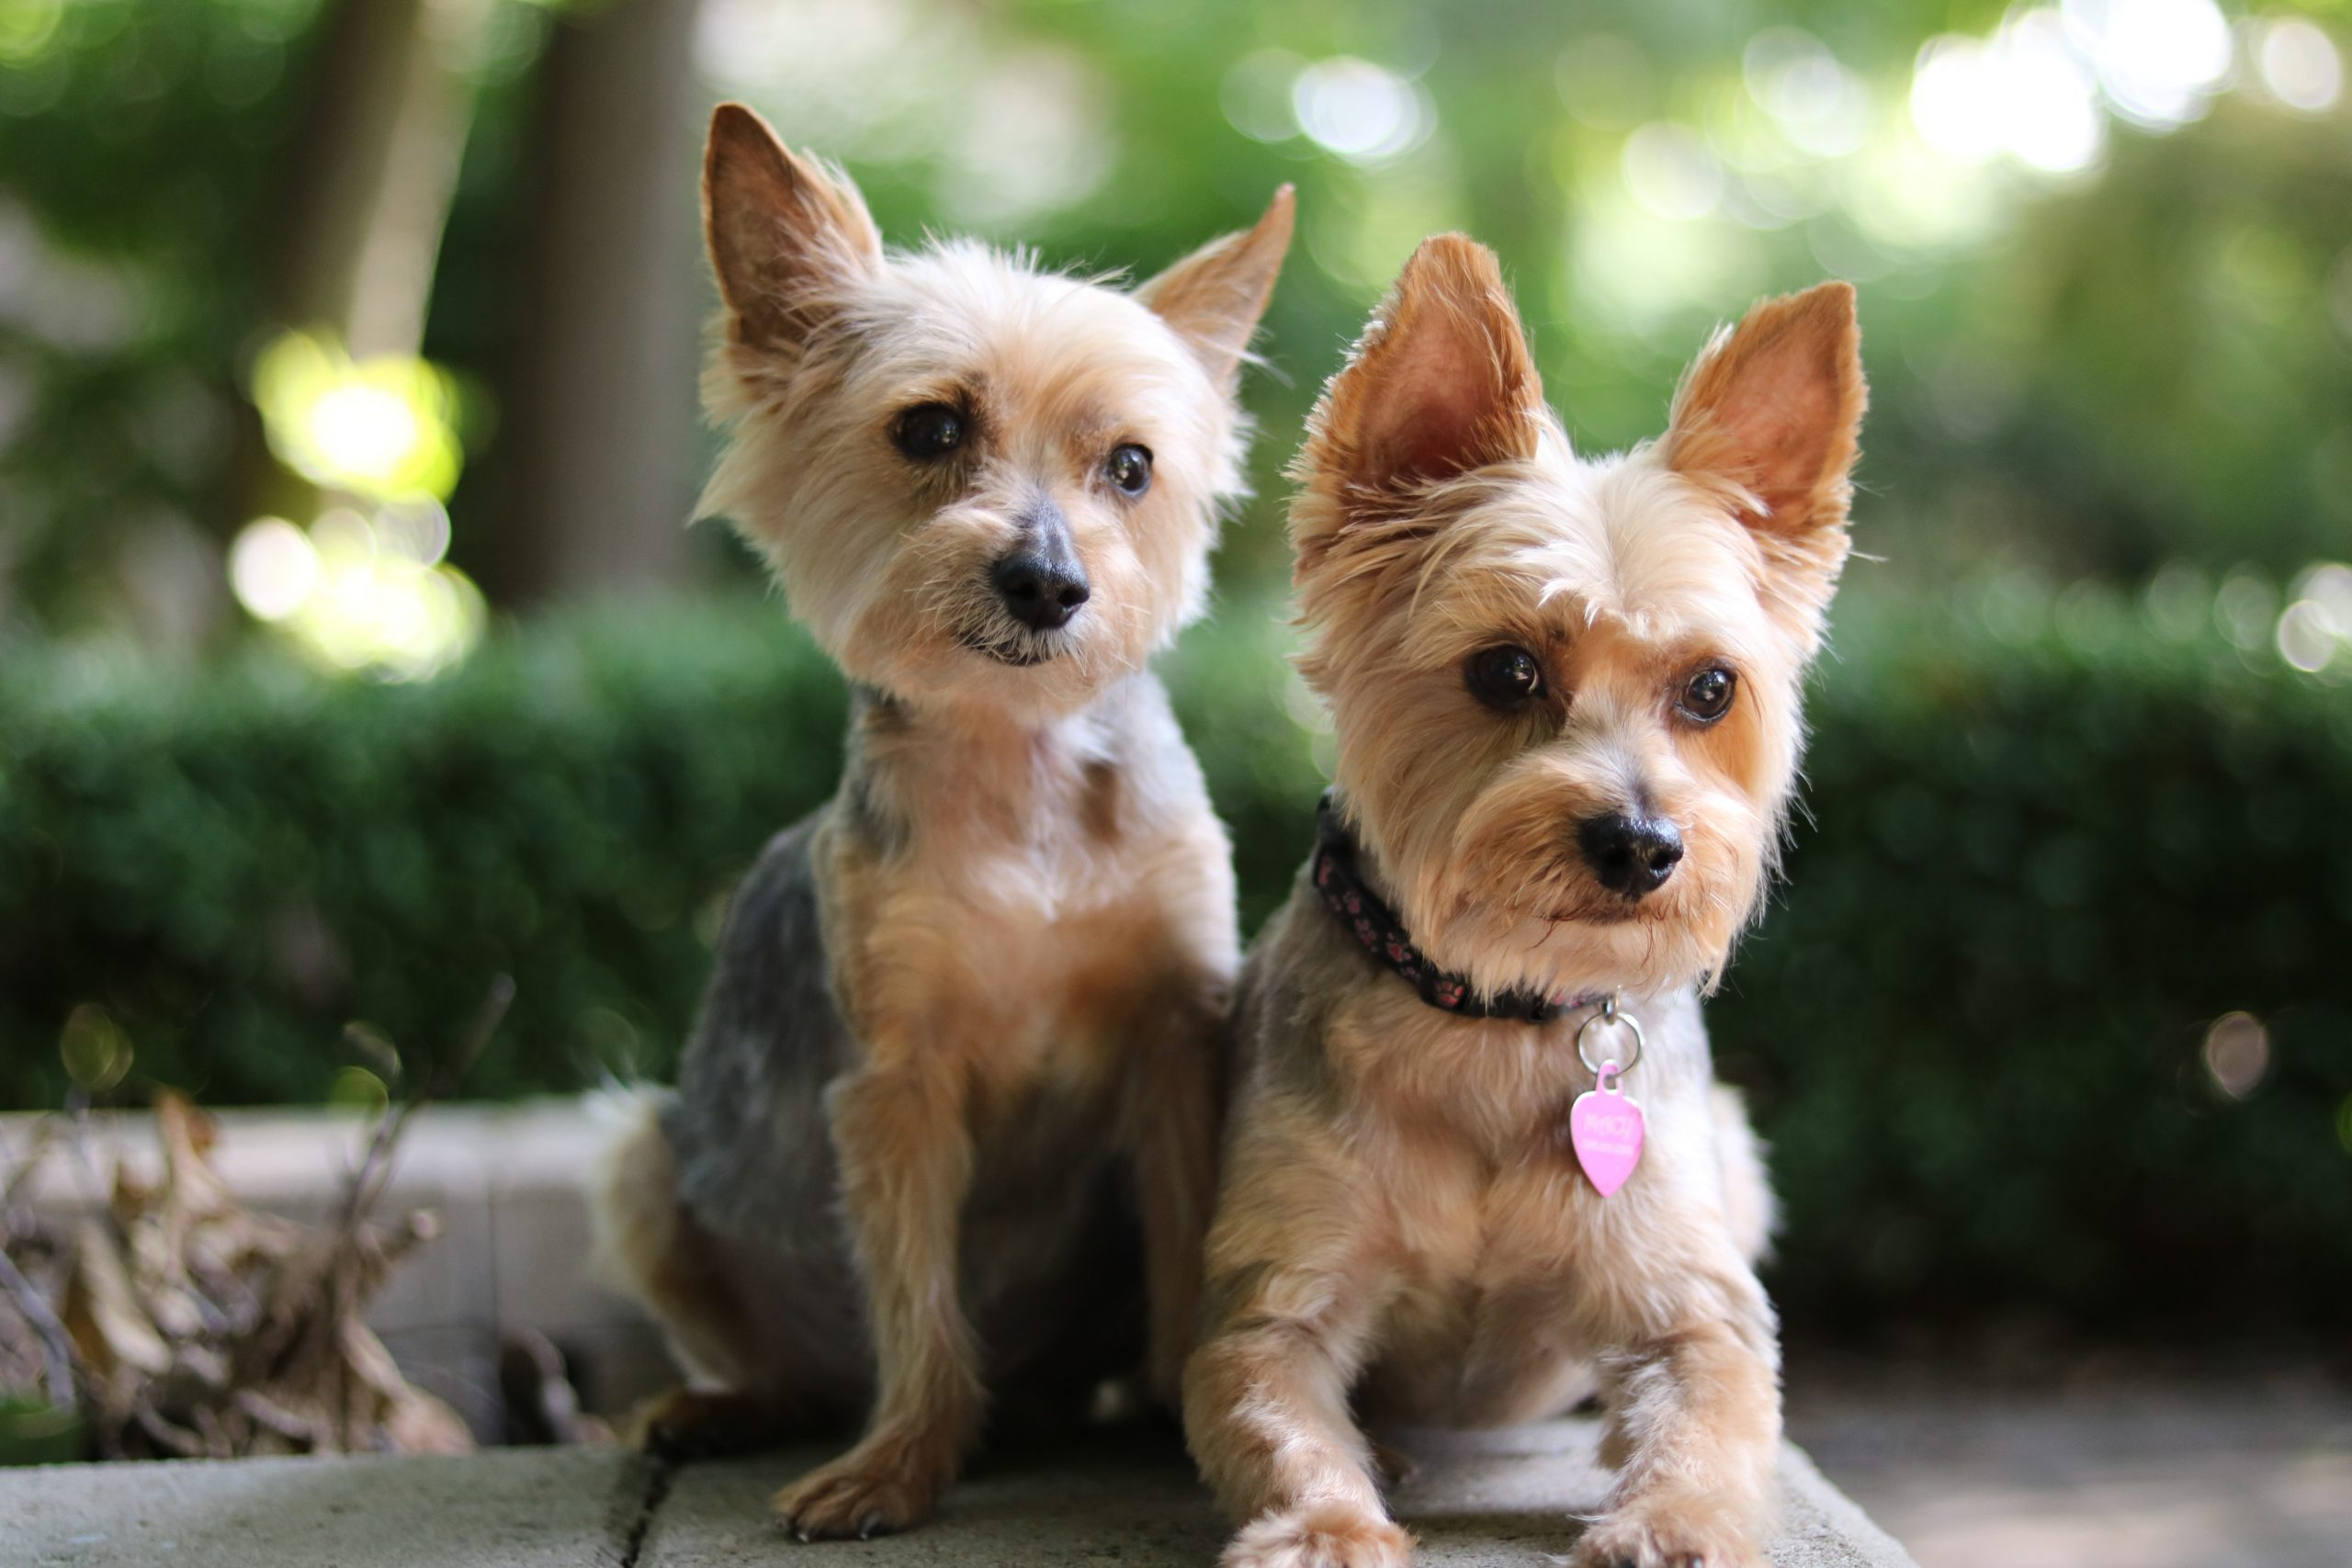 How smart are yorkies?